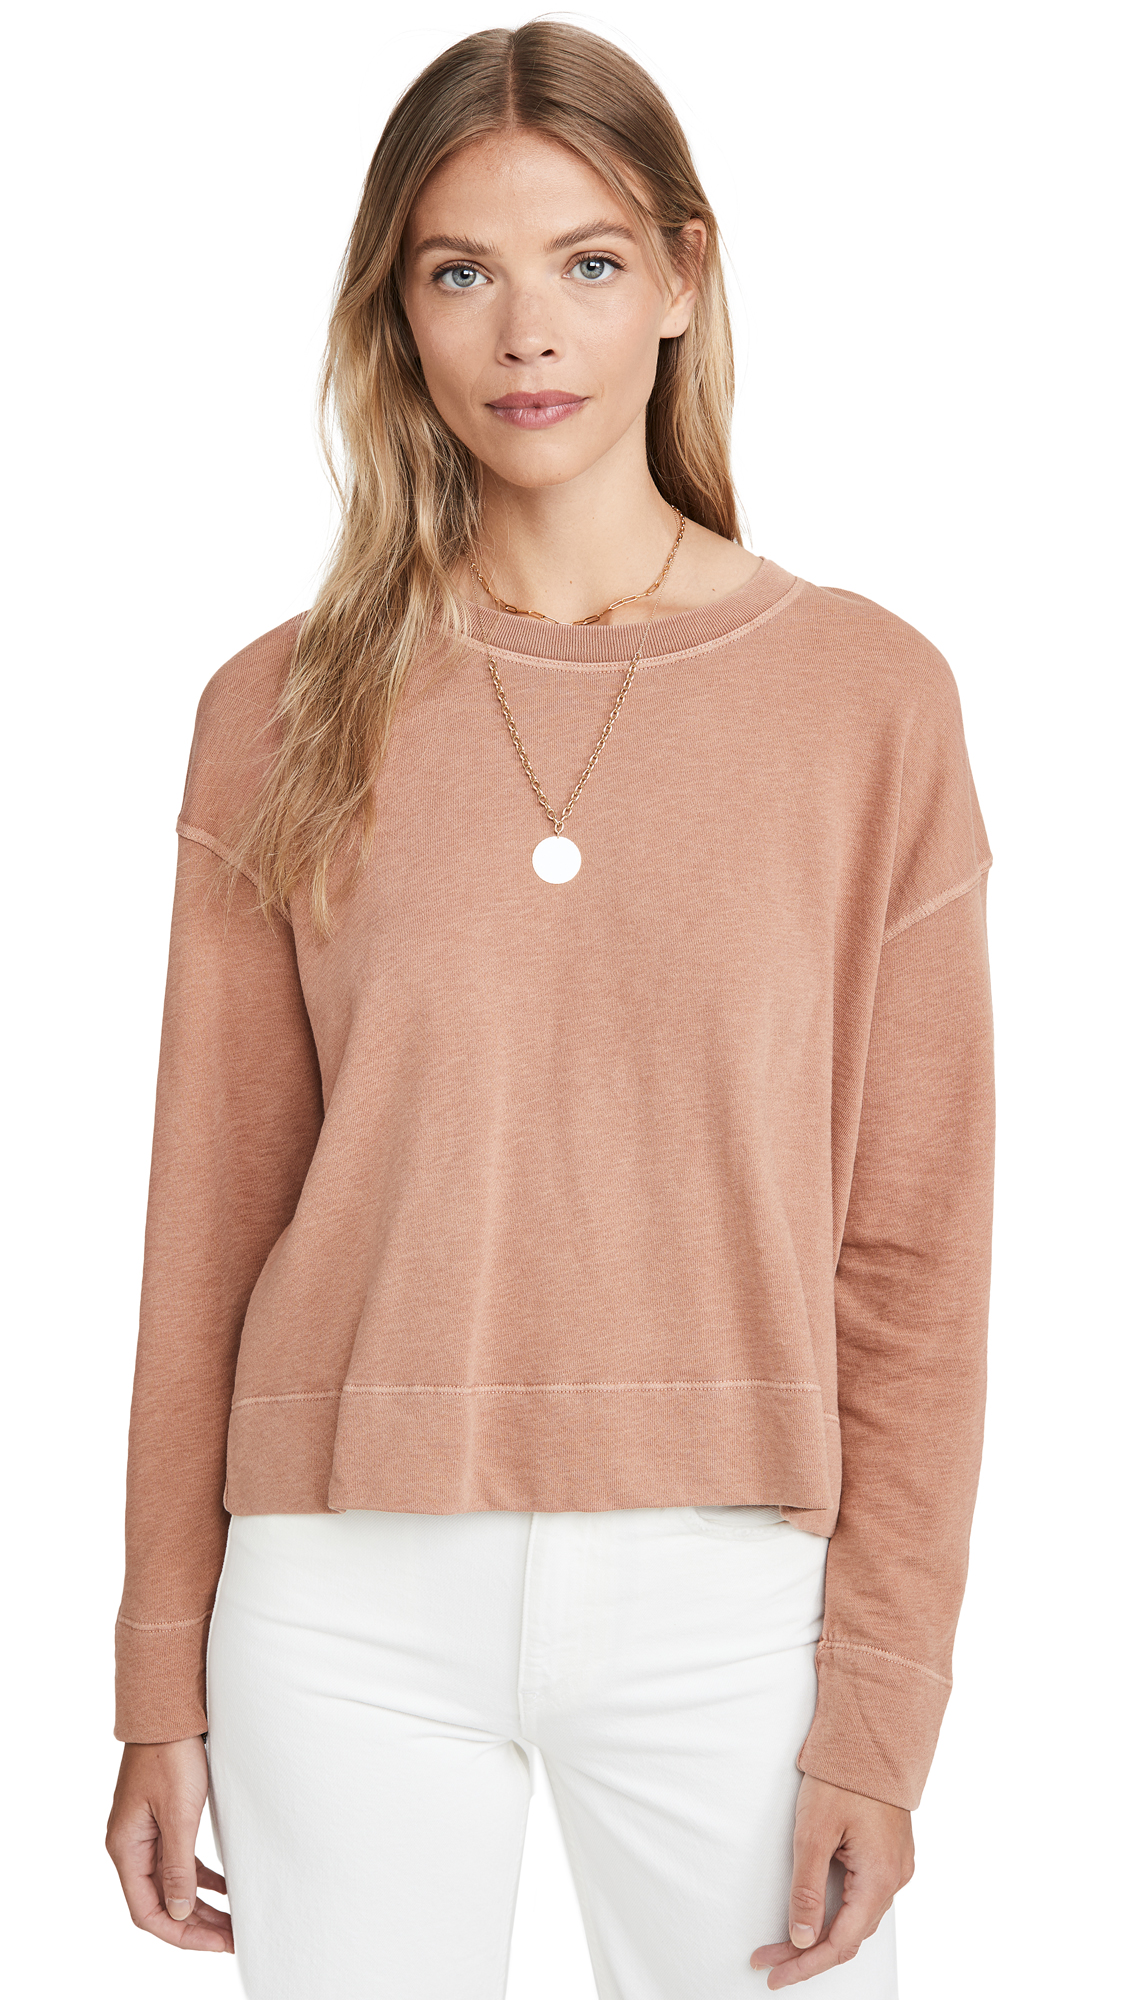 James Perse Relaxed Crop Pullover - 30% Off Sale